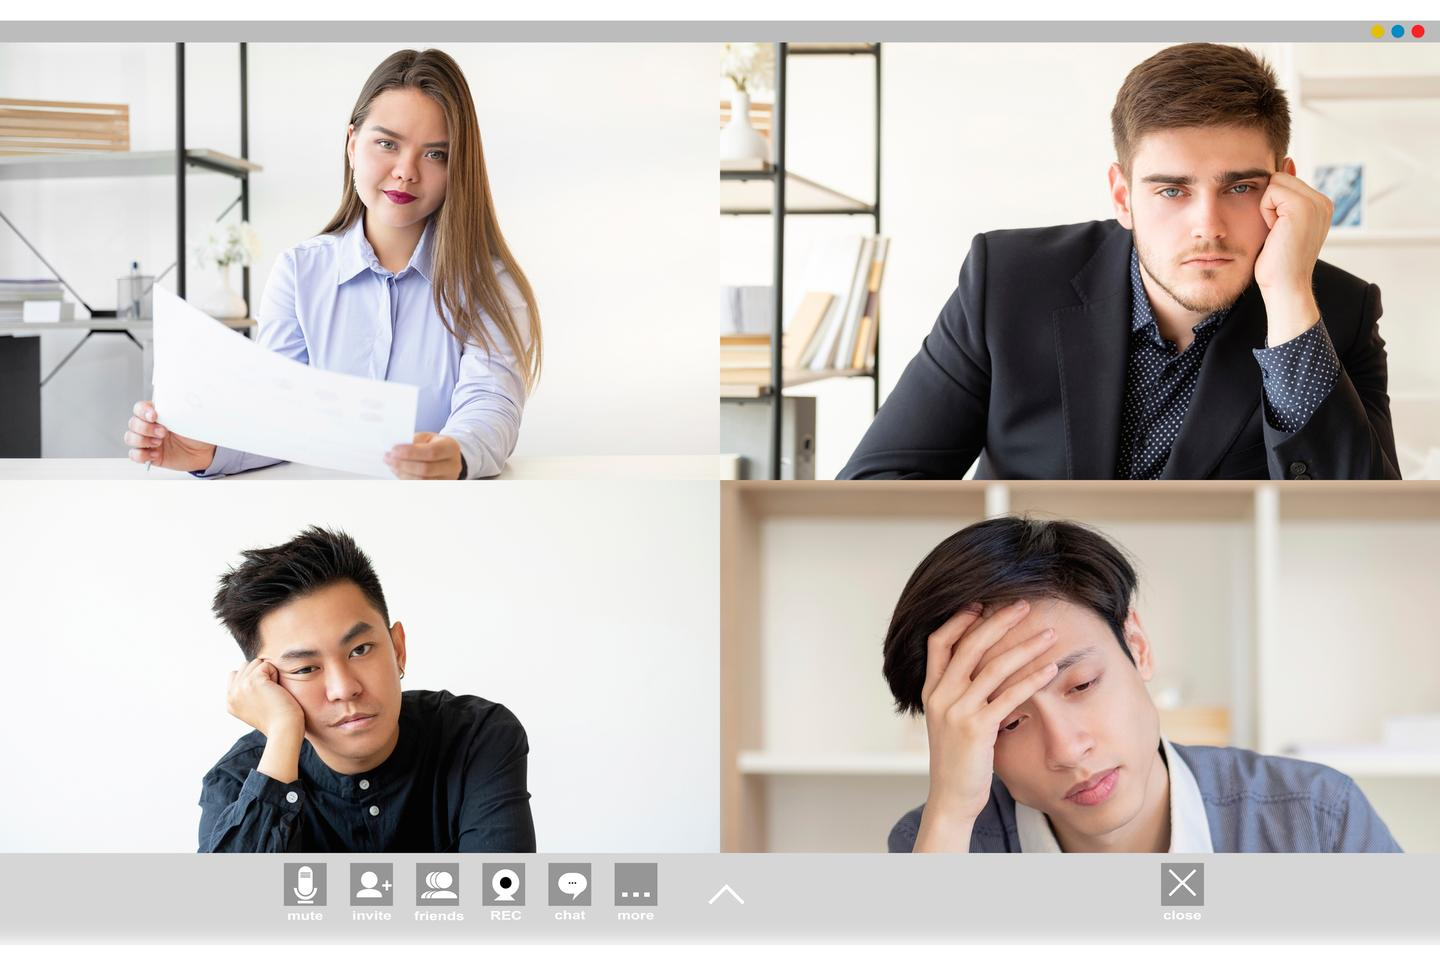 A new study explores the common recent trend of Zoom Fatigue and suggests some ways to avoid exhaustion from a day of videoconferencing